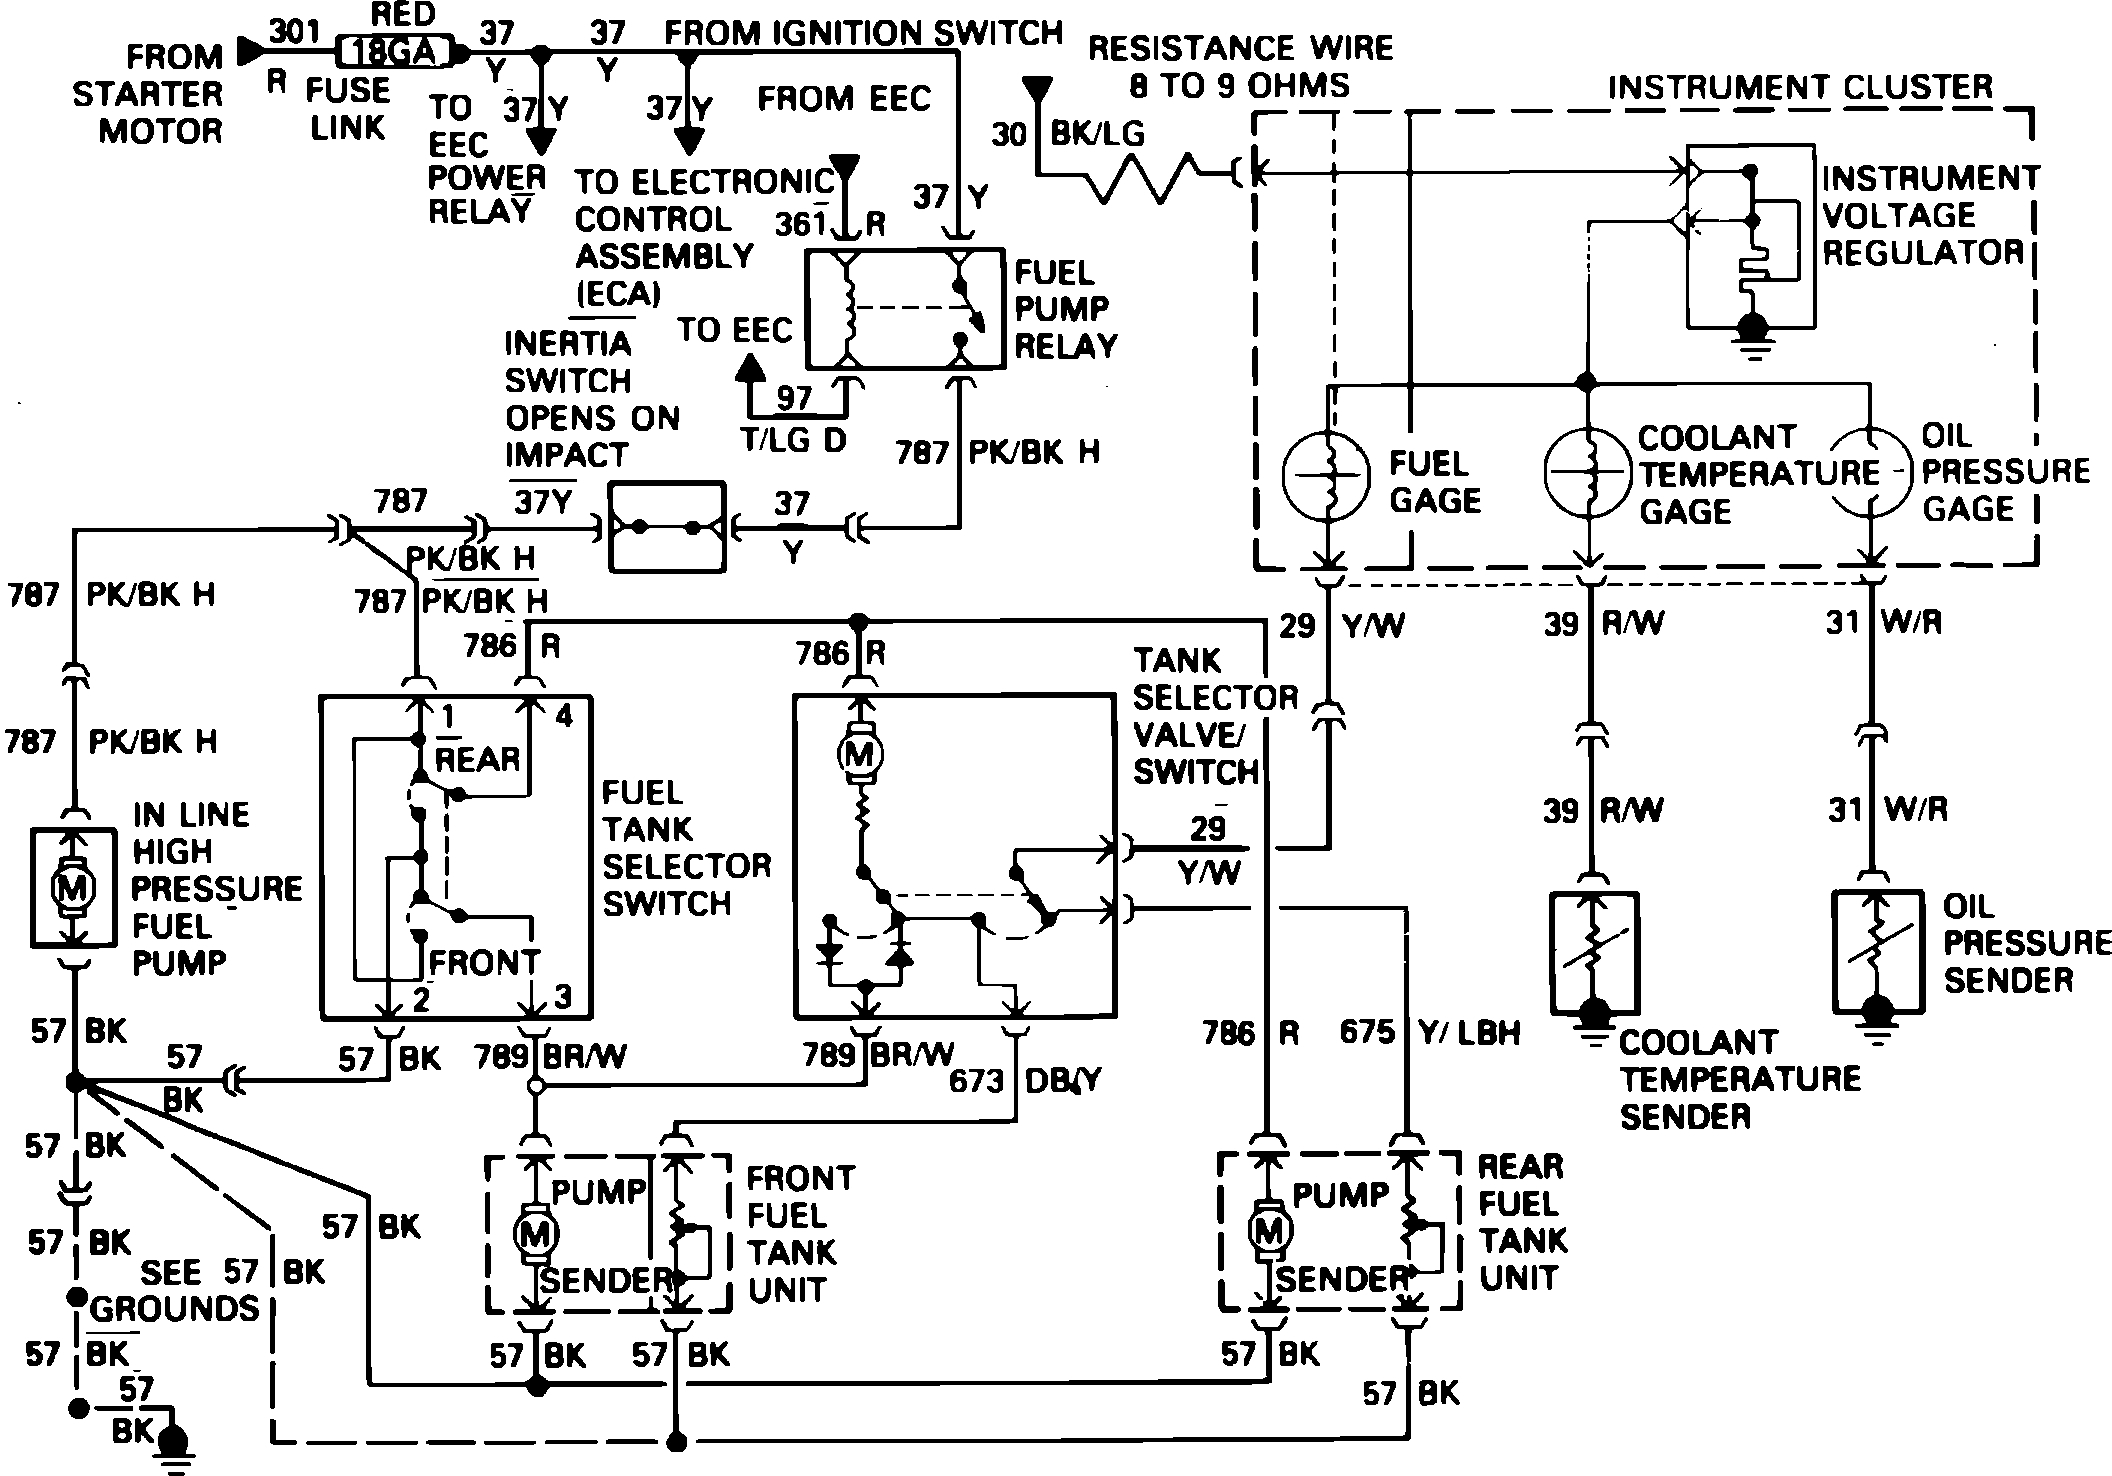 Dual Fuel Pump Schematic